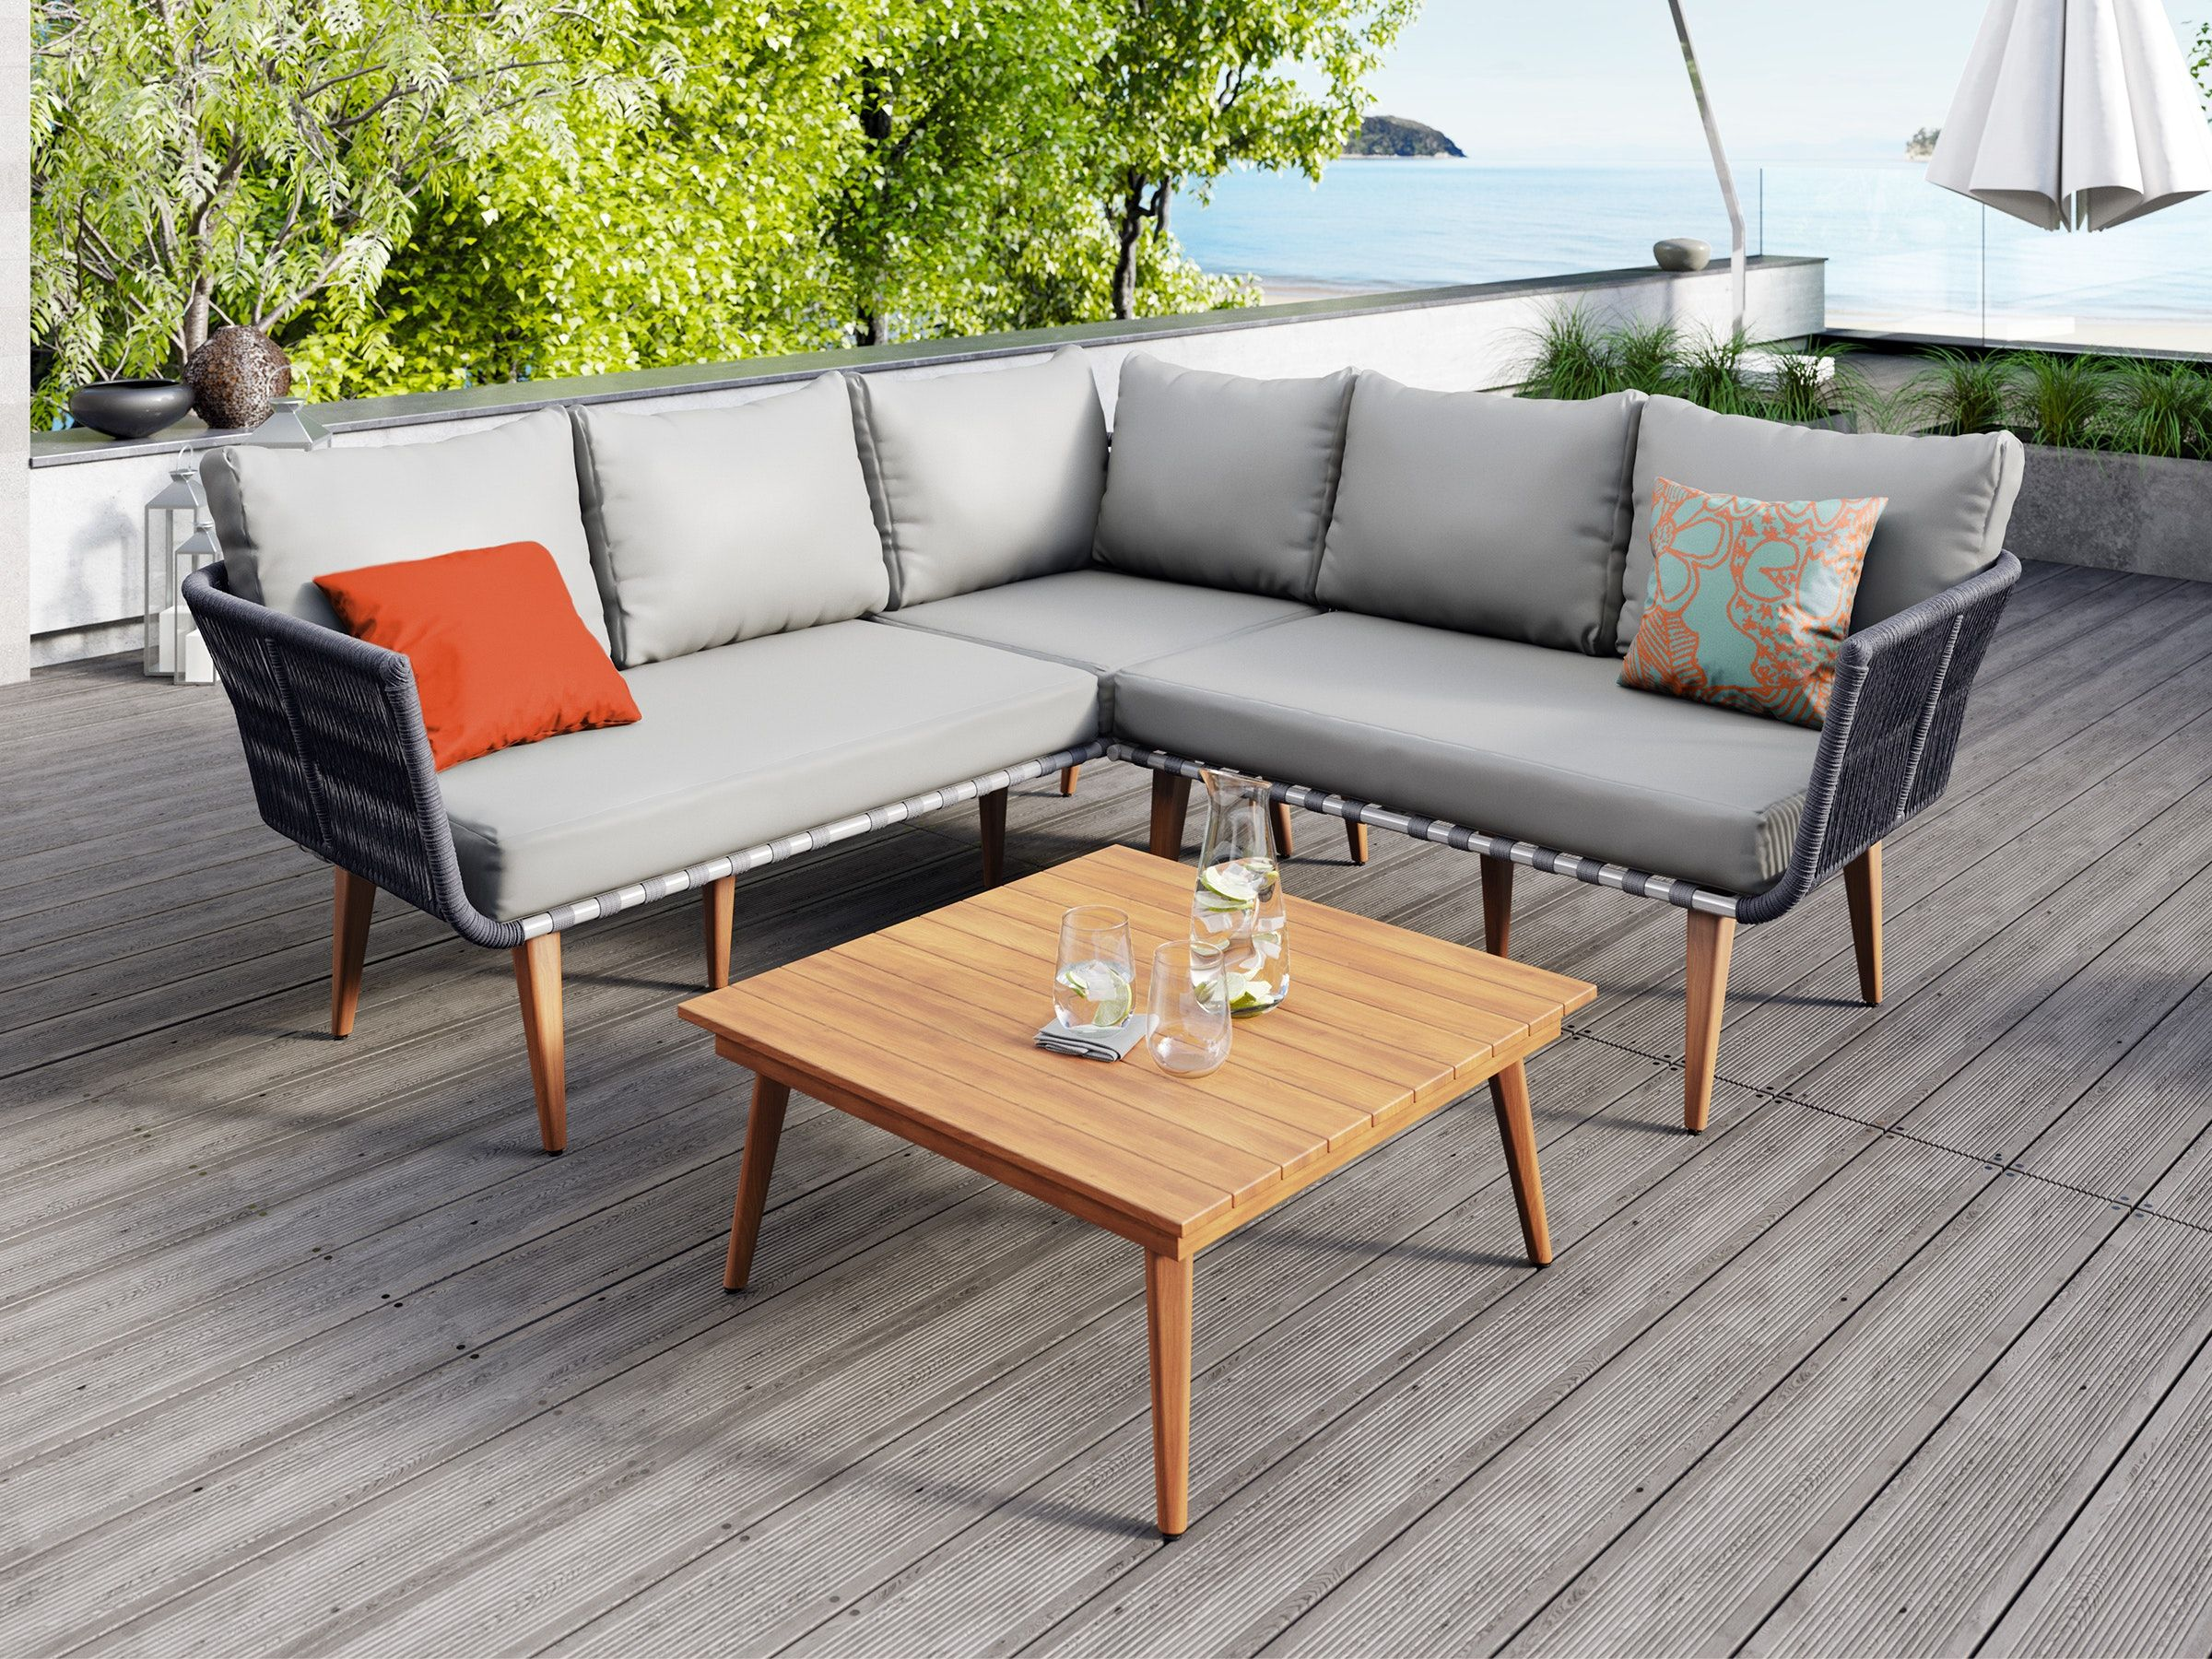 Tulum Corner Suite Outdoor Furniture Nz Outdoor Lounge Set Outdoor Lounge Furniture